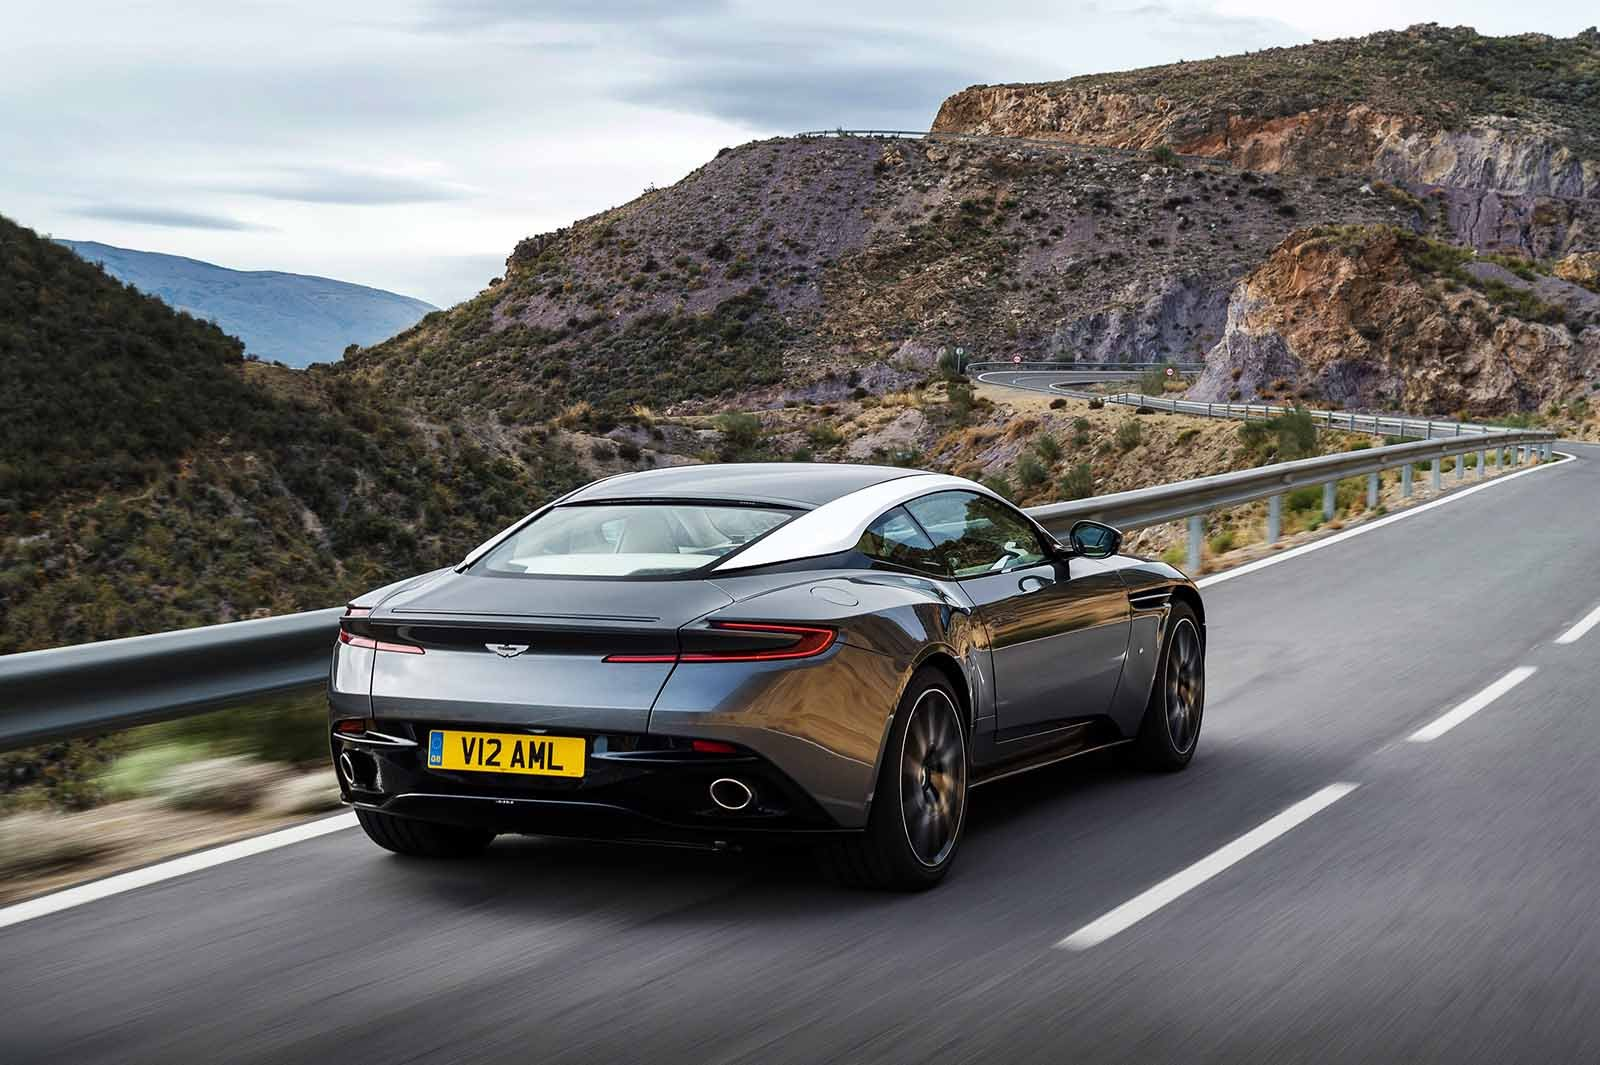 Driving the Aston Martin DB11